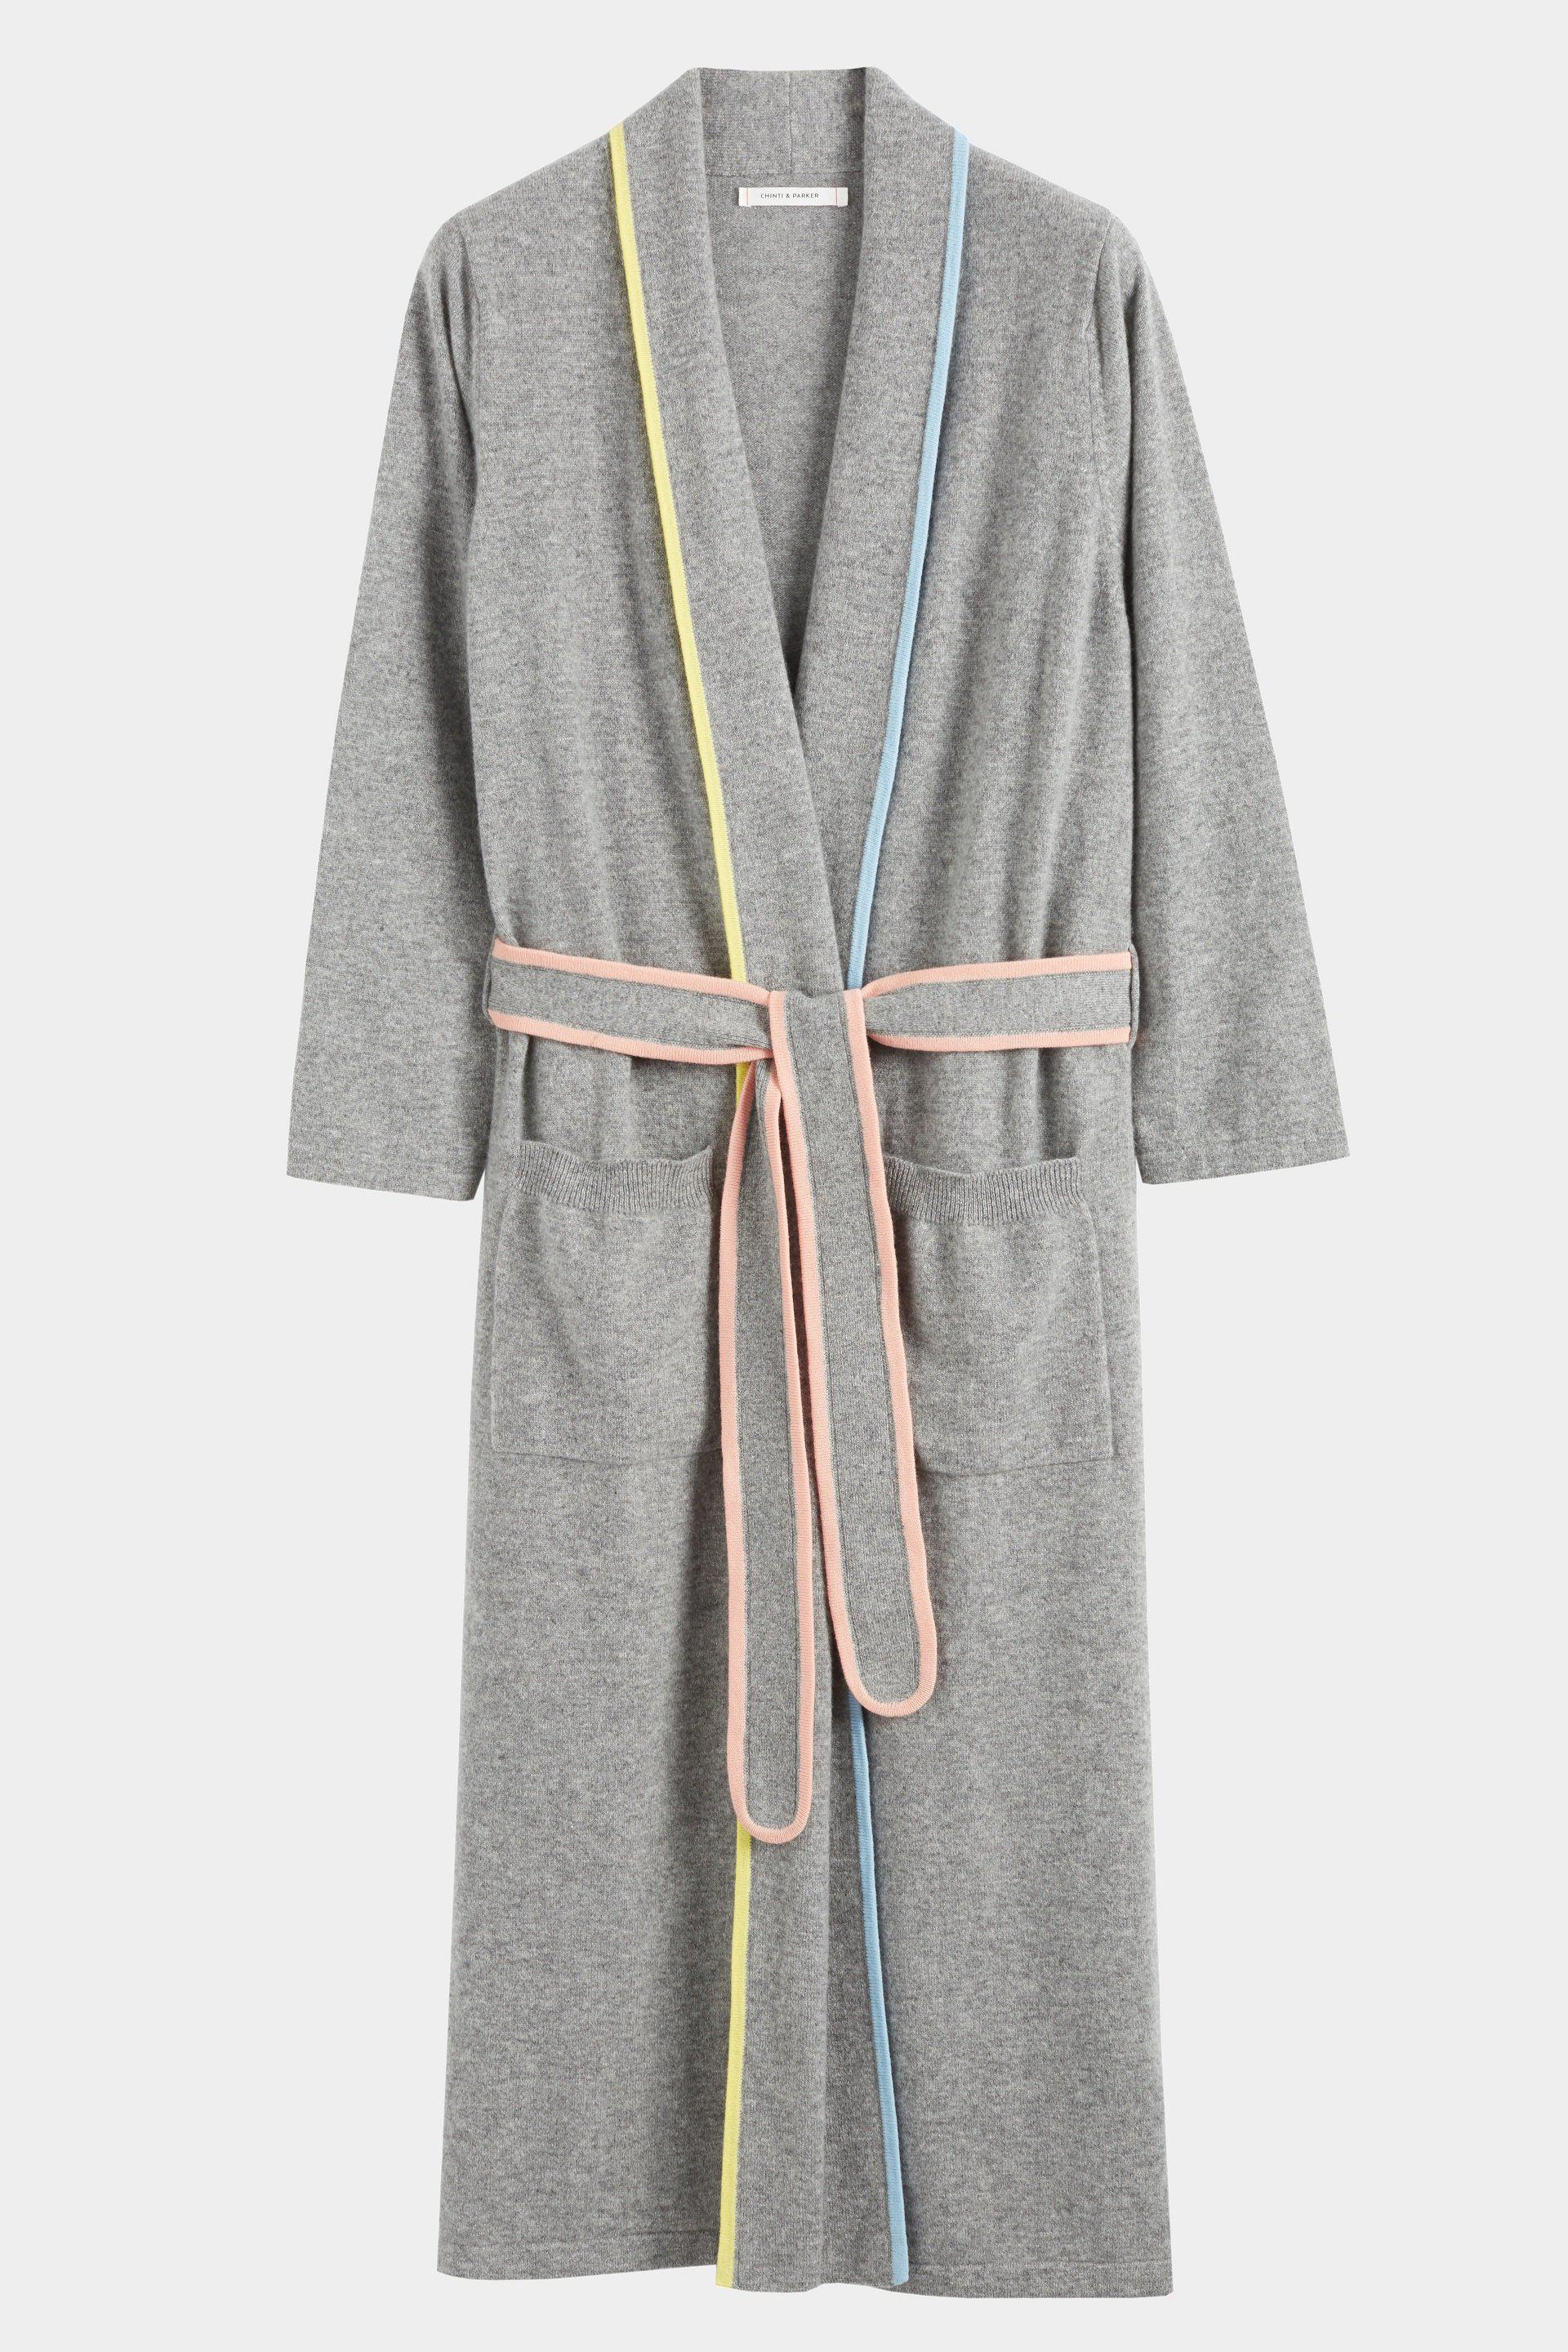 4a0c9d2ae8 Chinti   Parker - Gray Grey Cashmere Belted Dressing Gown - Lyst. View  fullscreen